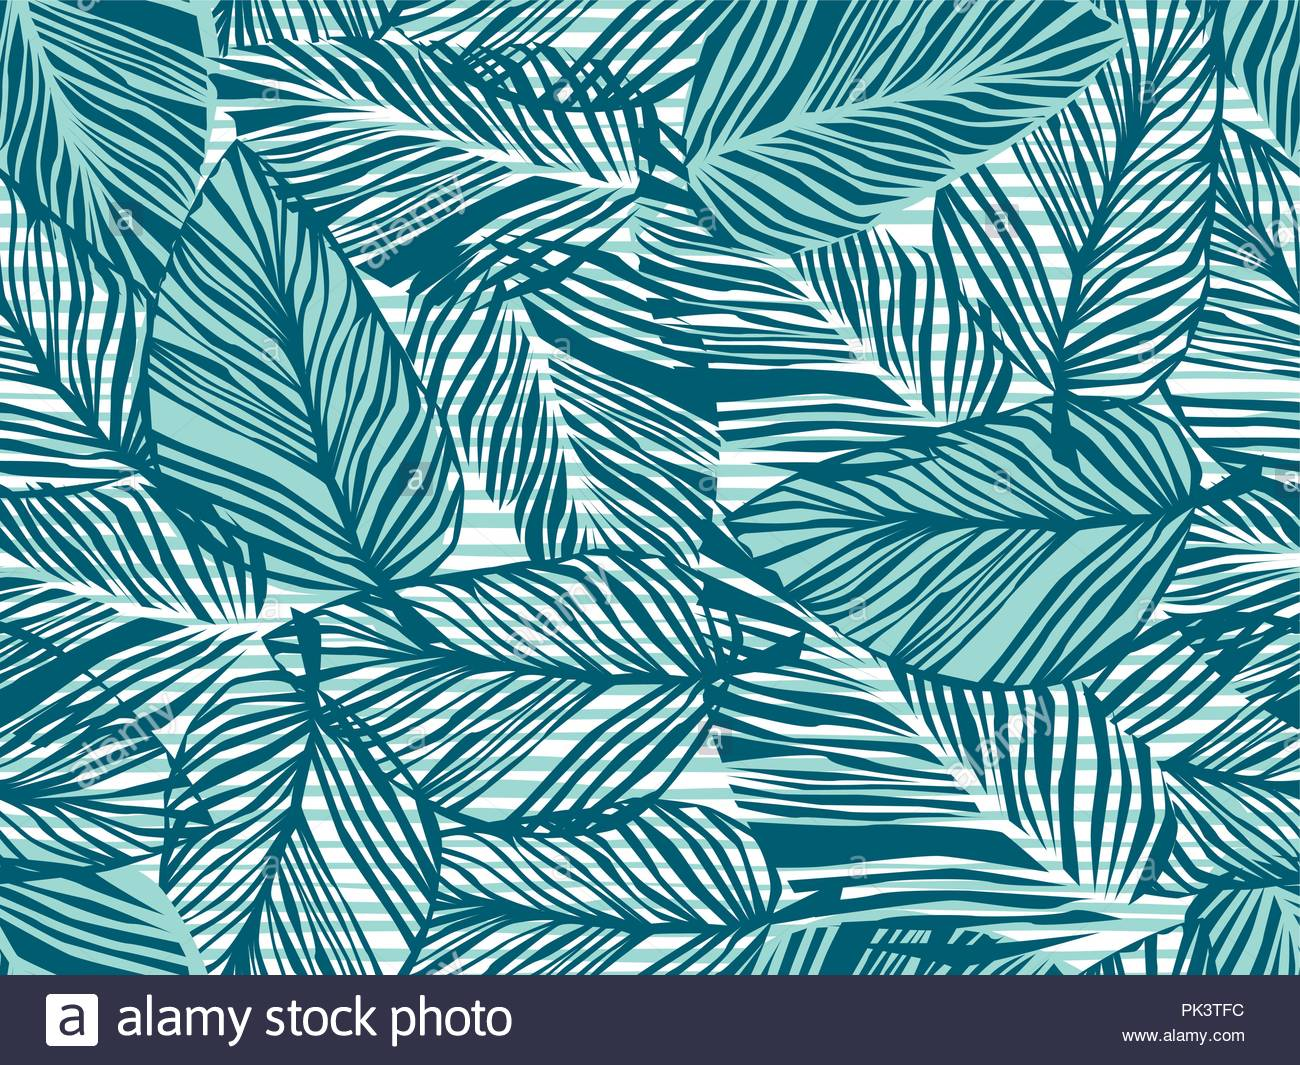 Tropical pattern, palm leaves seamless vector floral